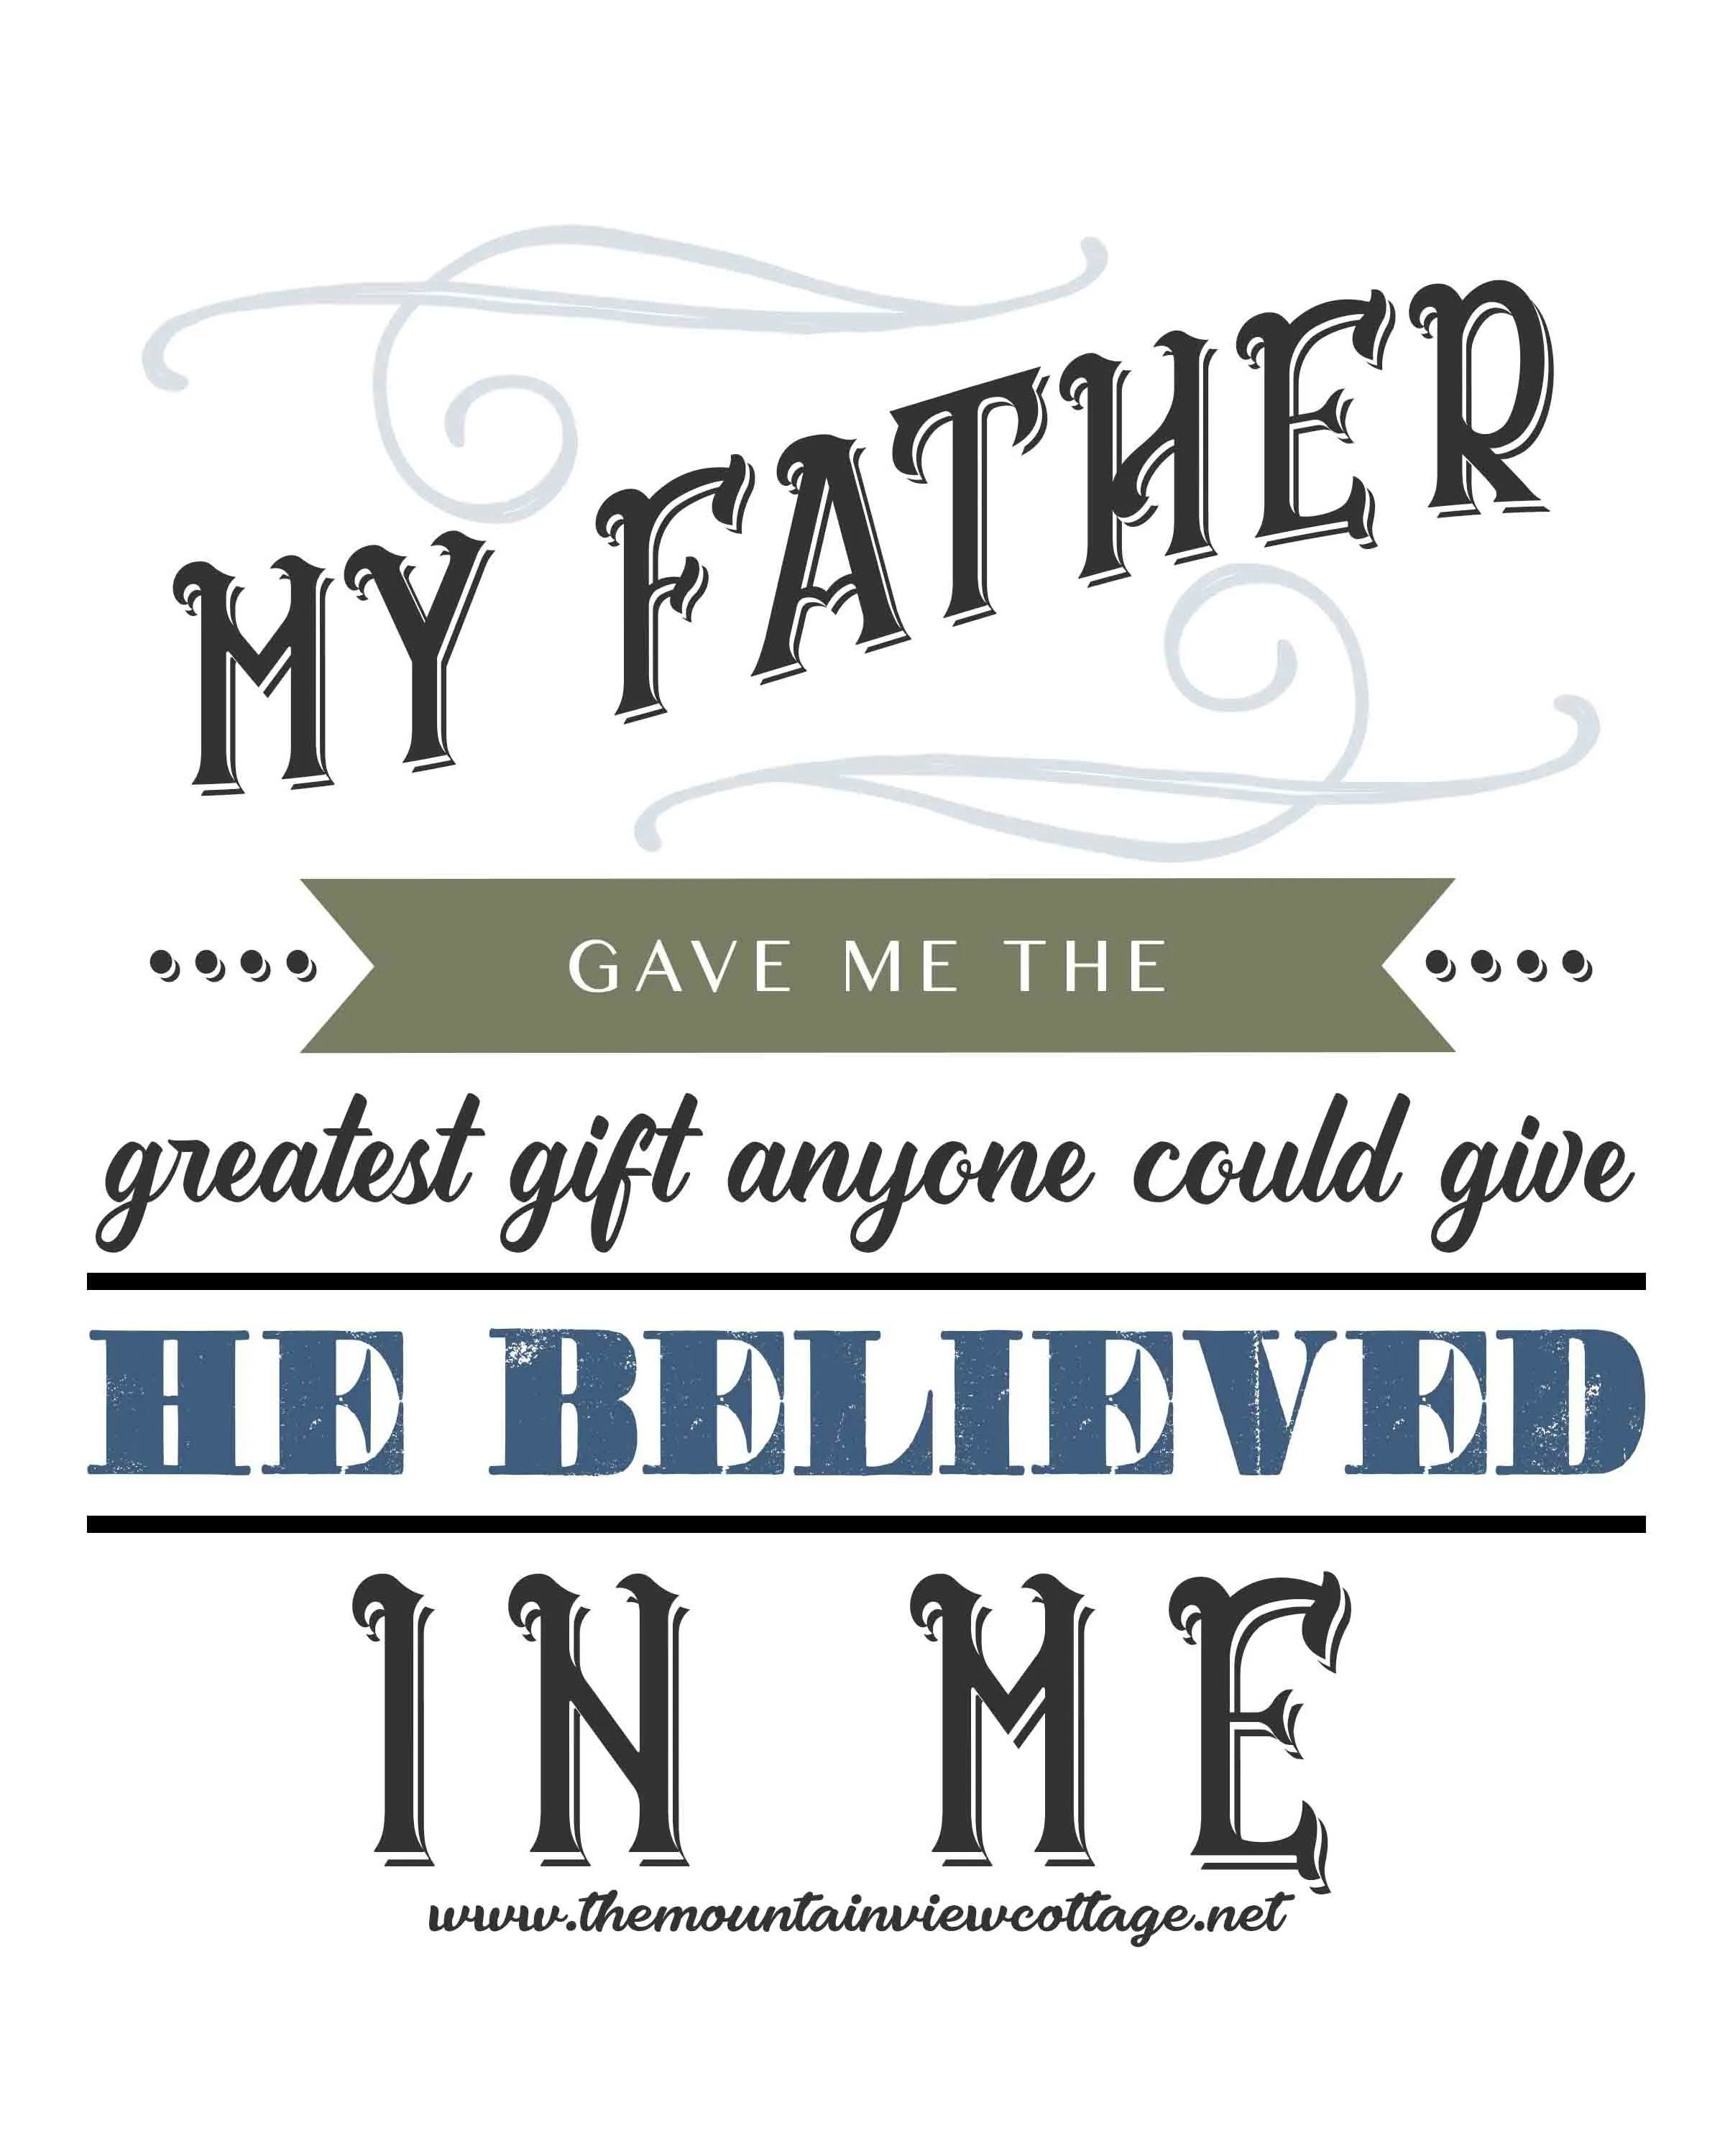 Daughter Missing Father Quotes : daughter, missing, father, quotes, Quotes, Inspire, {With, Images}, Mountain, Cottage